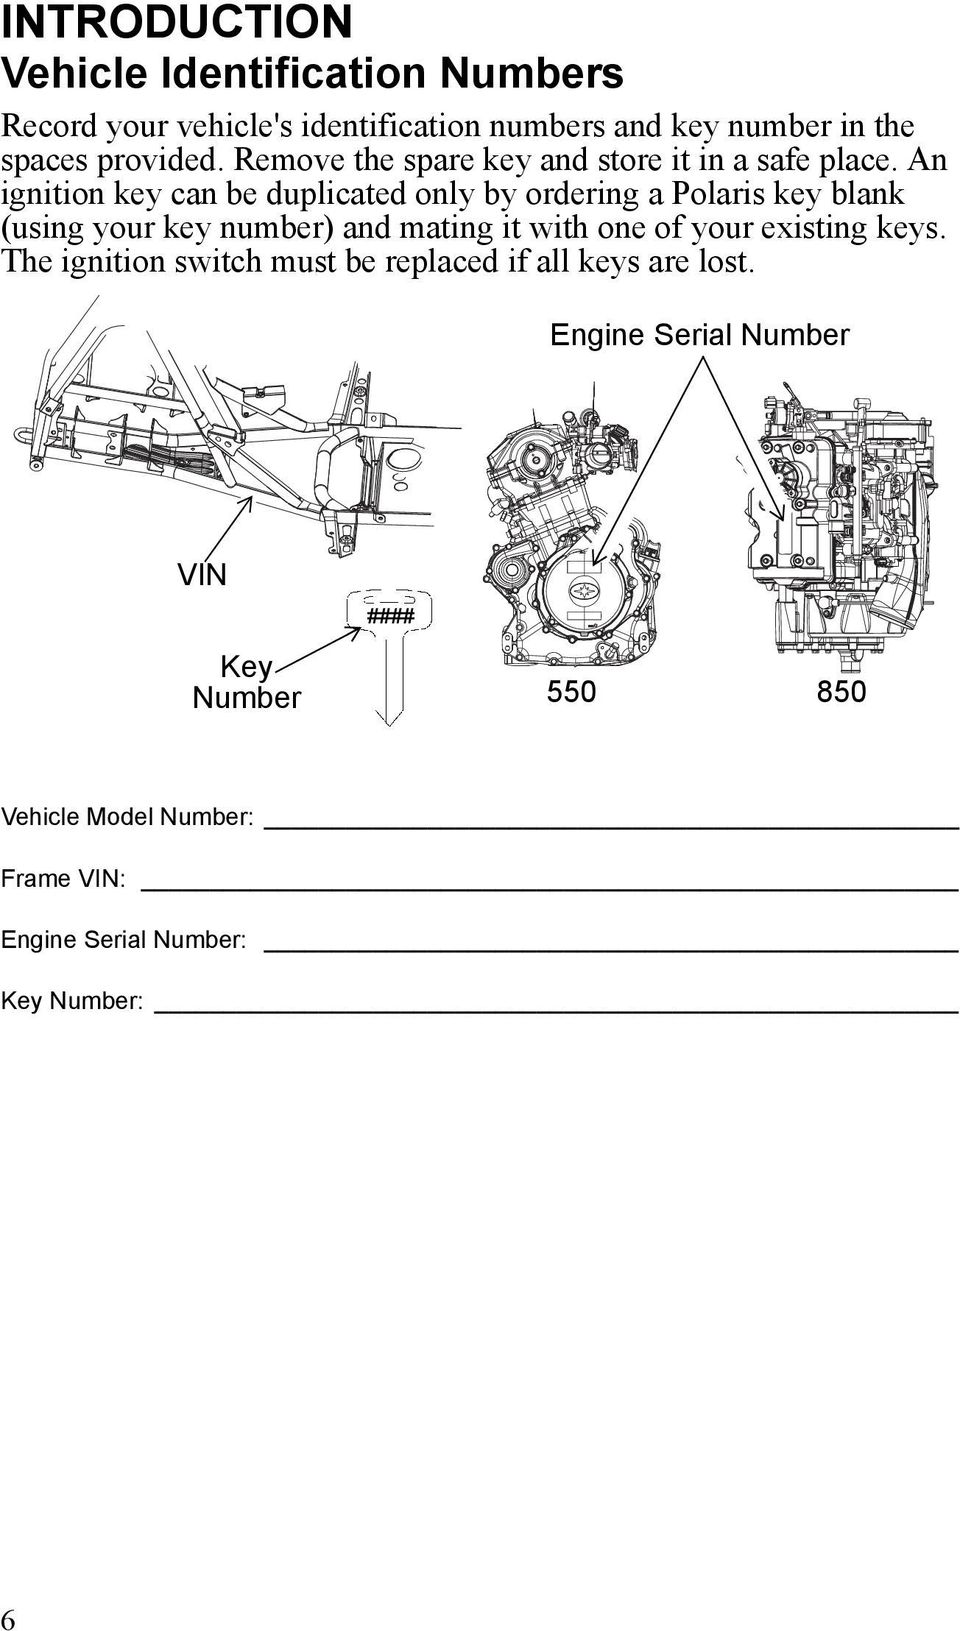 Sportsman 550 Xp Eps 850 Vw Bus Engine Diagram With Wheelie Bar An Ignition Key Can Be Duplicated Only By Ordering A Polaris Blank Using Your